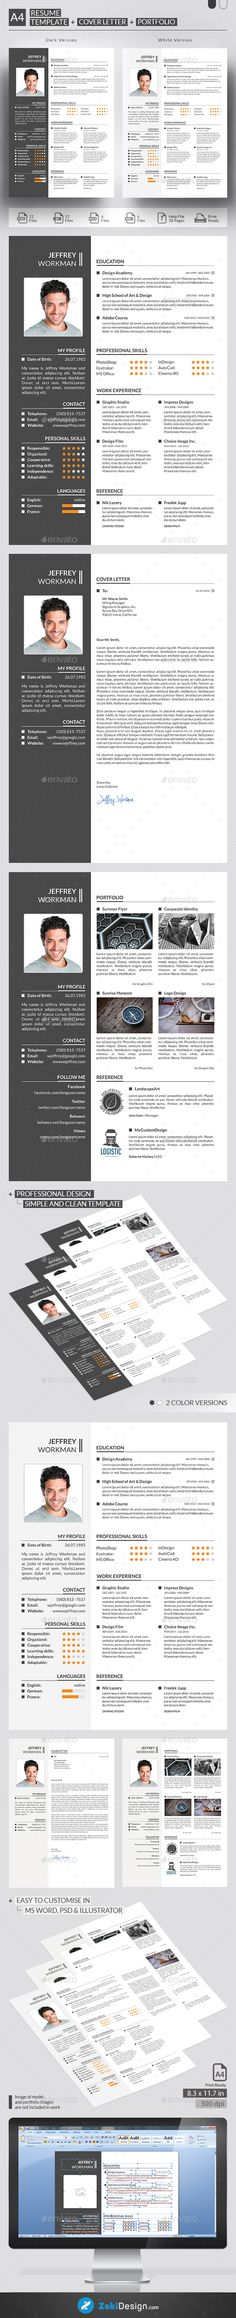 Editvel Formato Cv De Download  Cv Format Infographic Resume